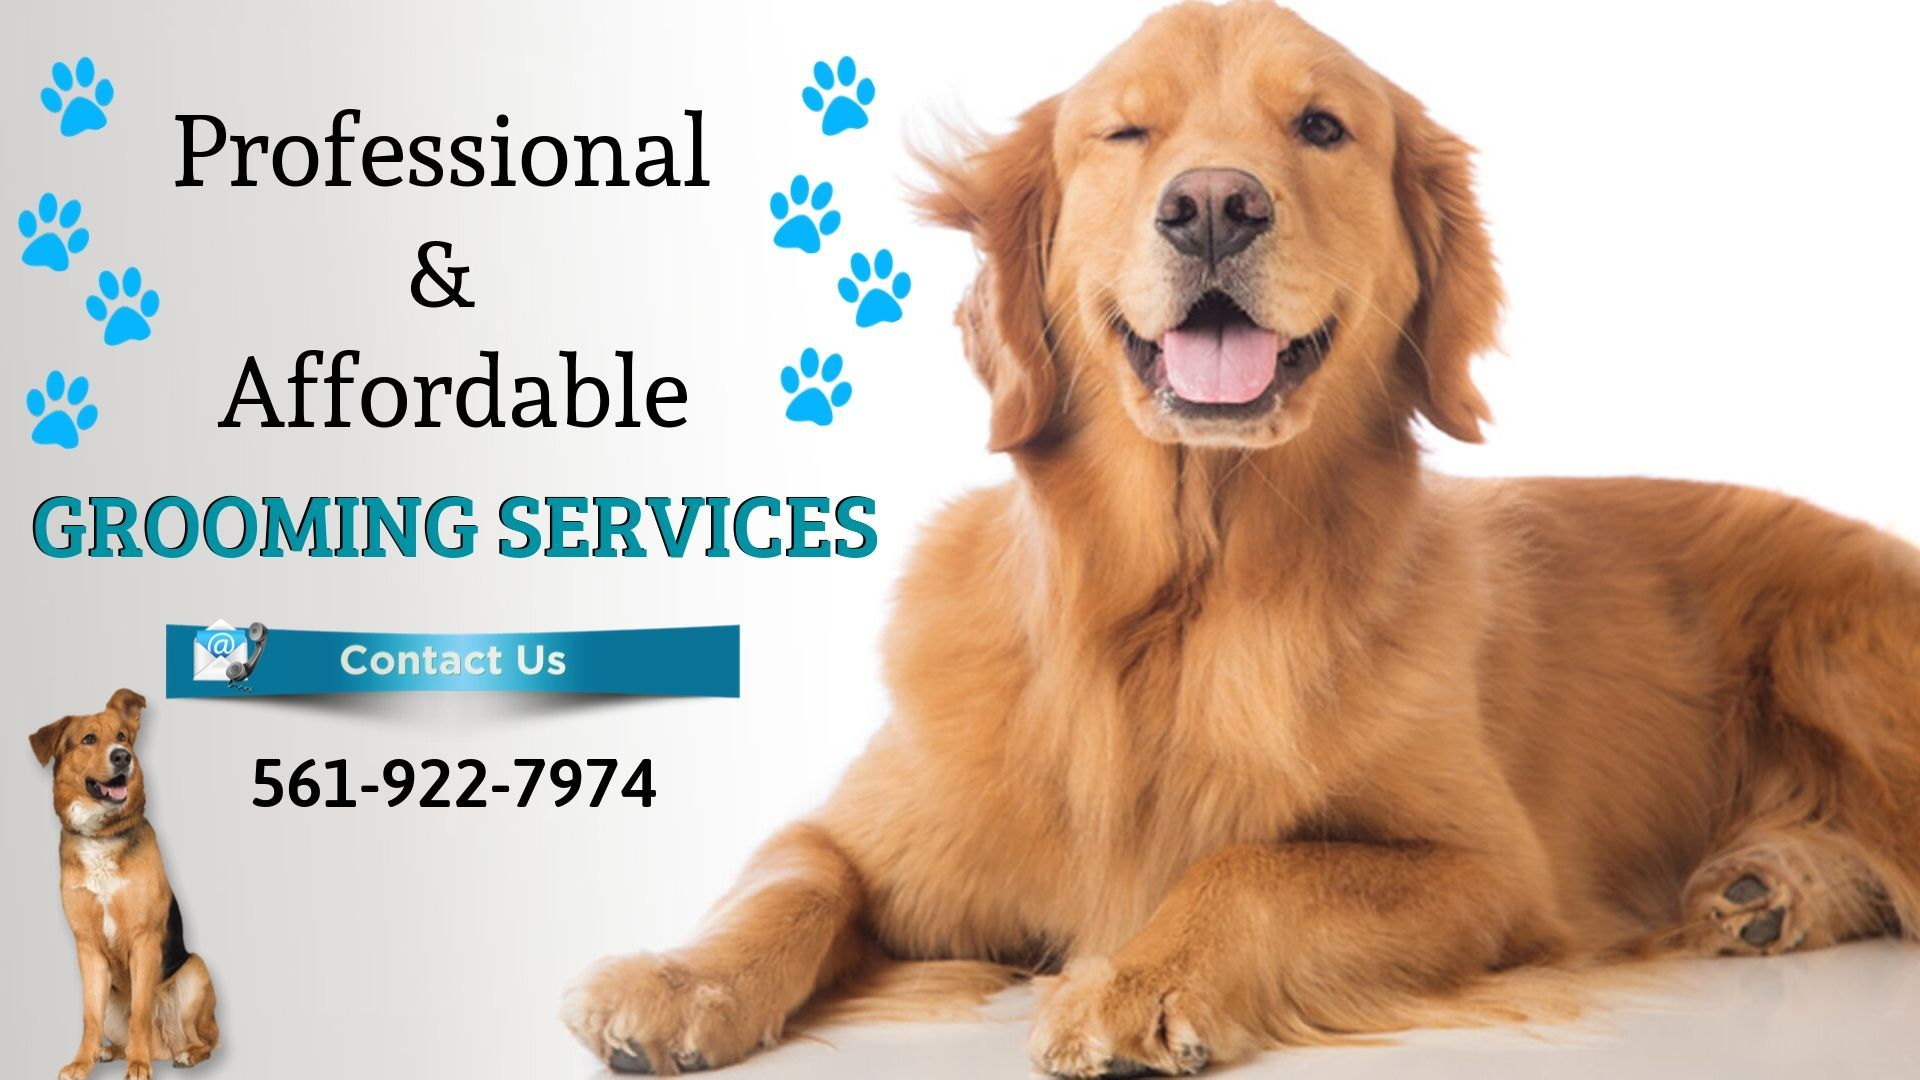 Dog Grooming Services Near Boca Raton Fl Healthy Pets Dog Grooming Grooming